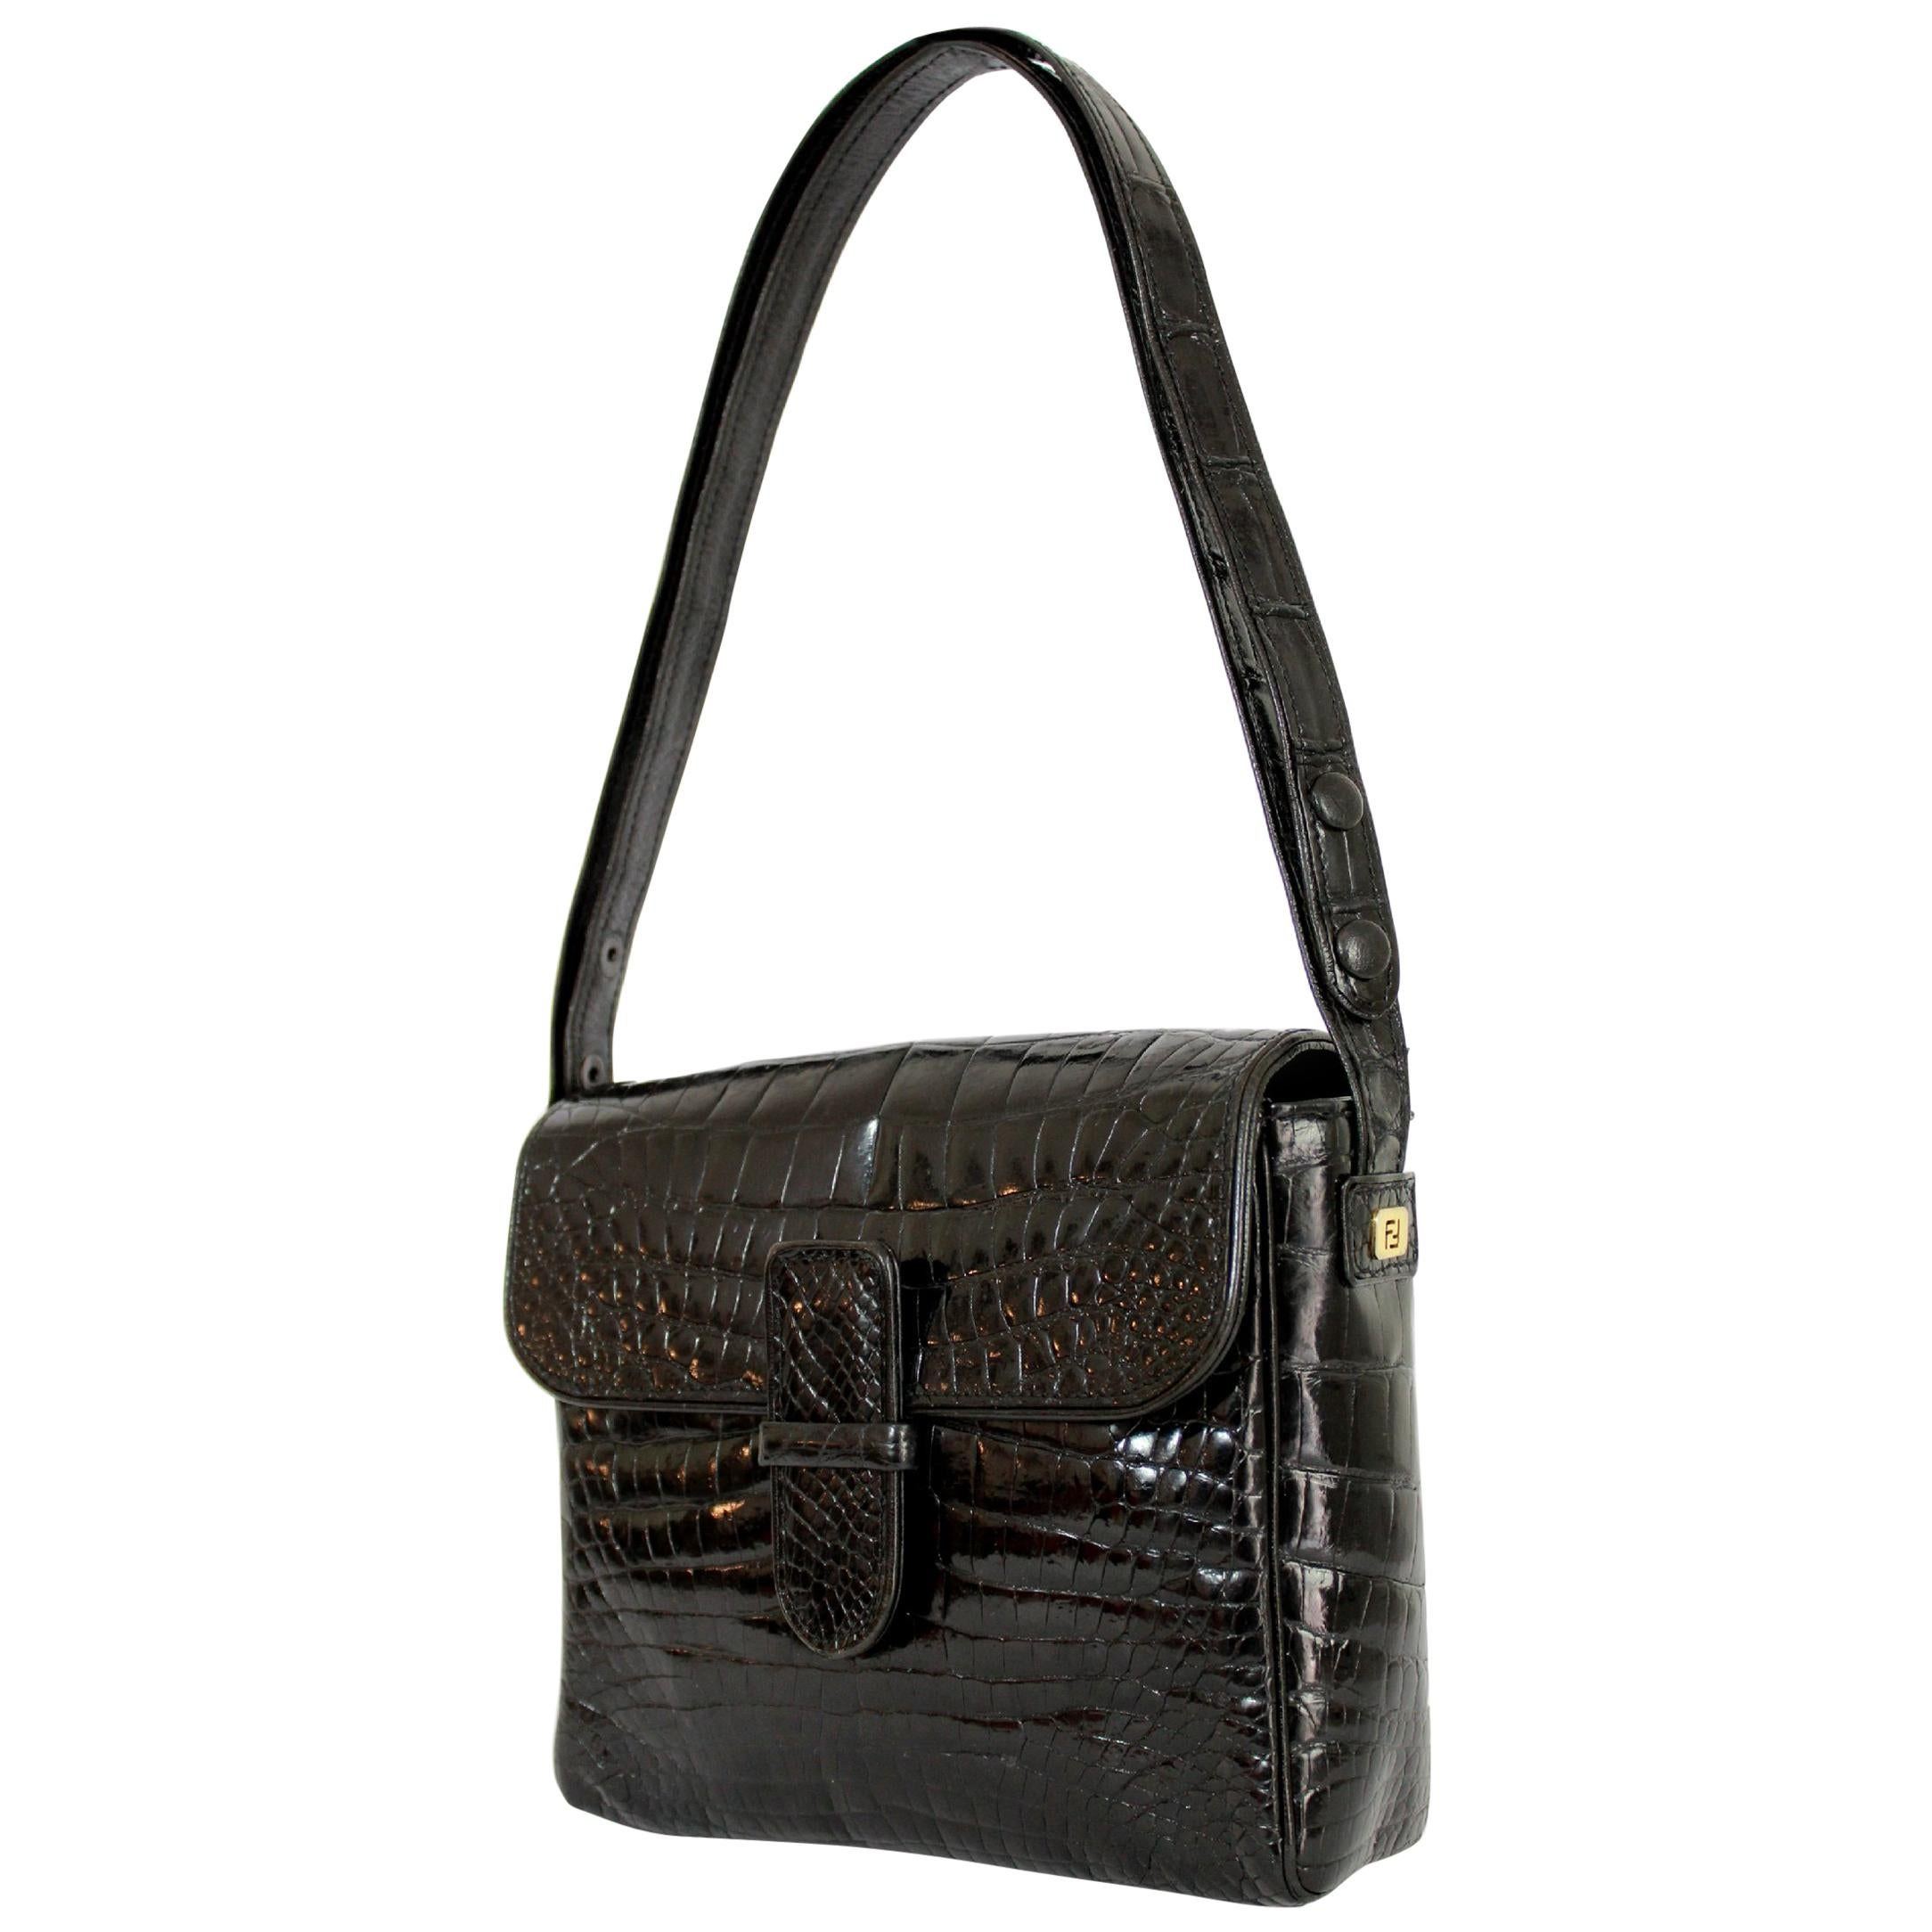 5578241c31a1 Vintage and Designer Bags - 22,779 For Sale at 1stdibs